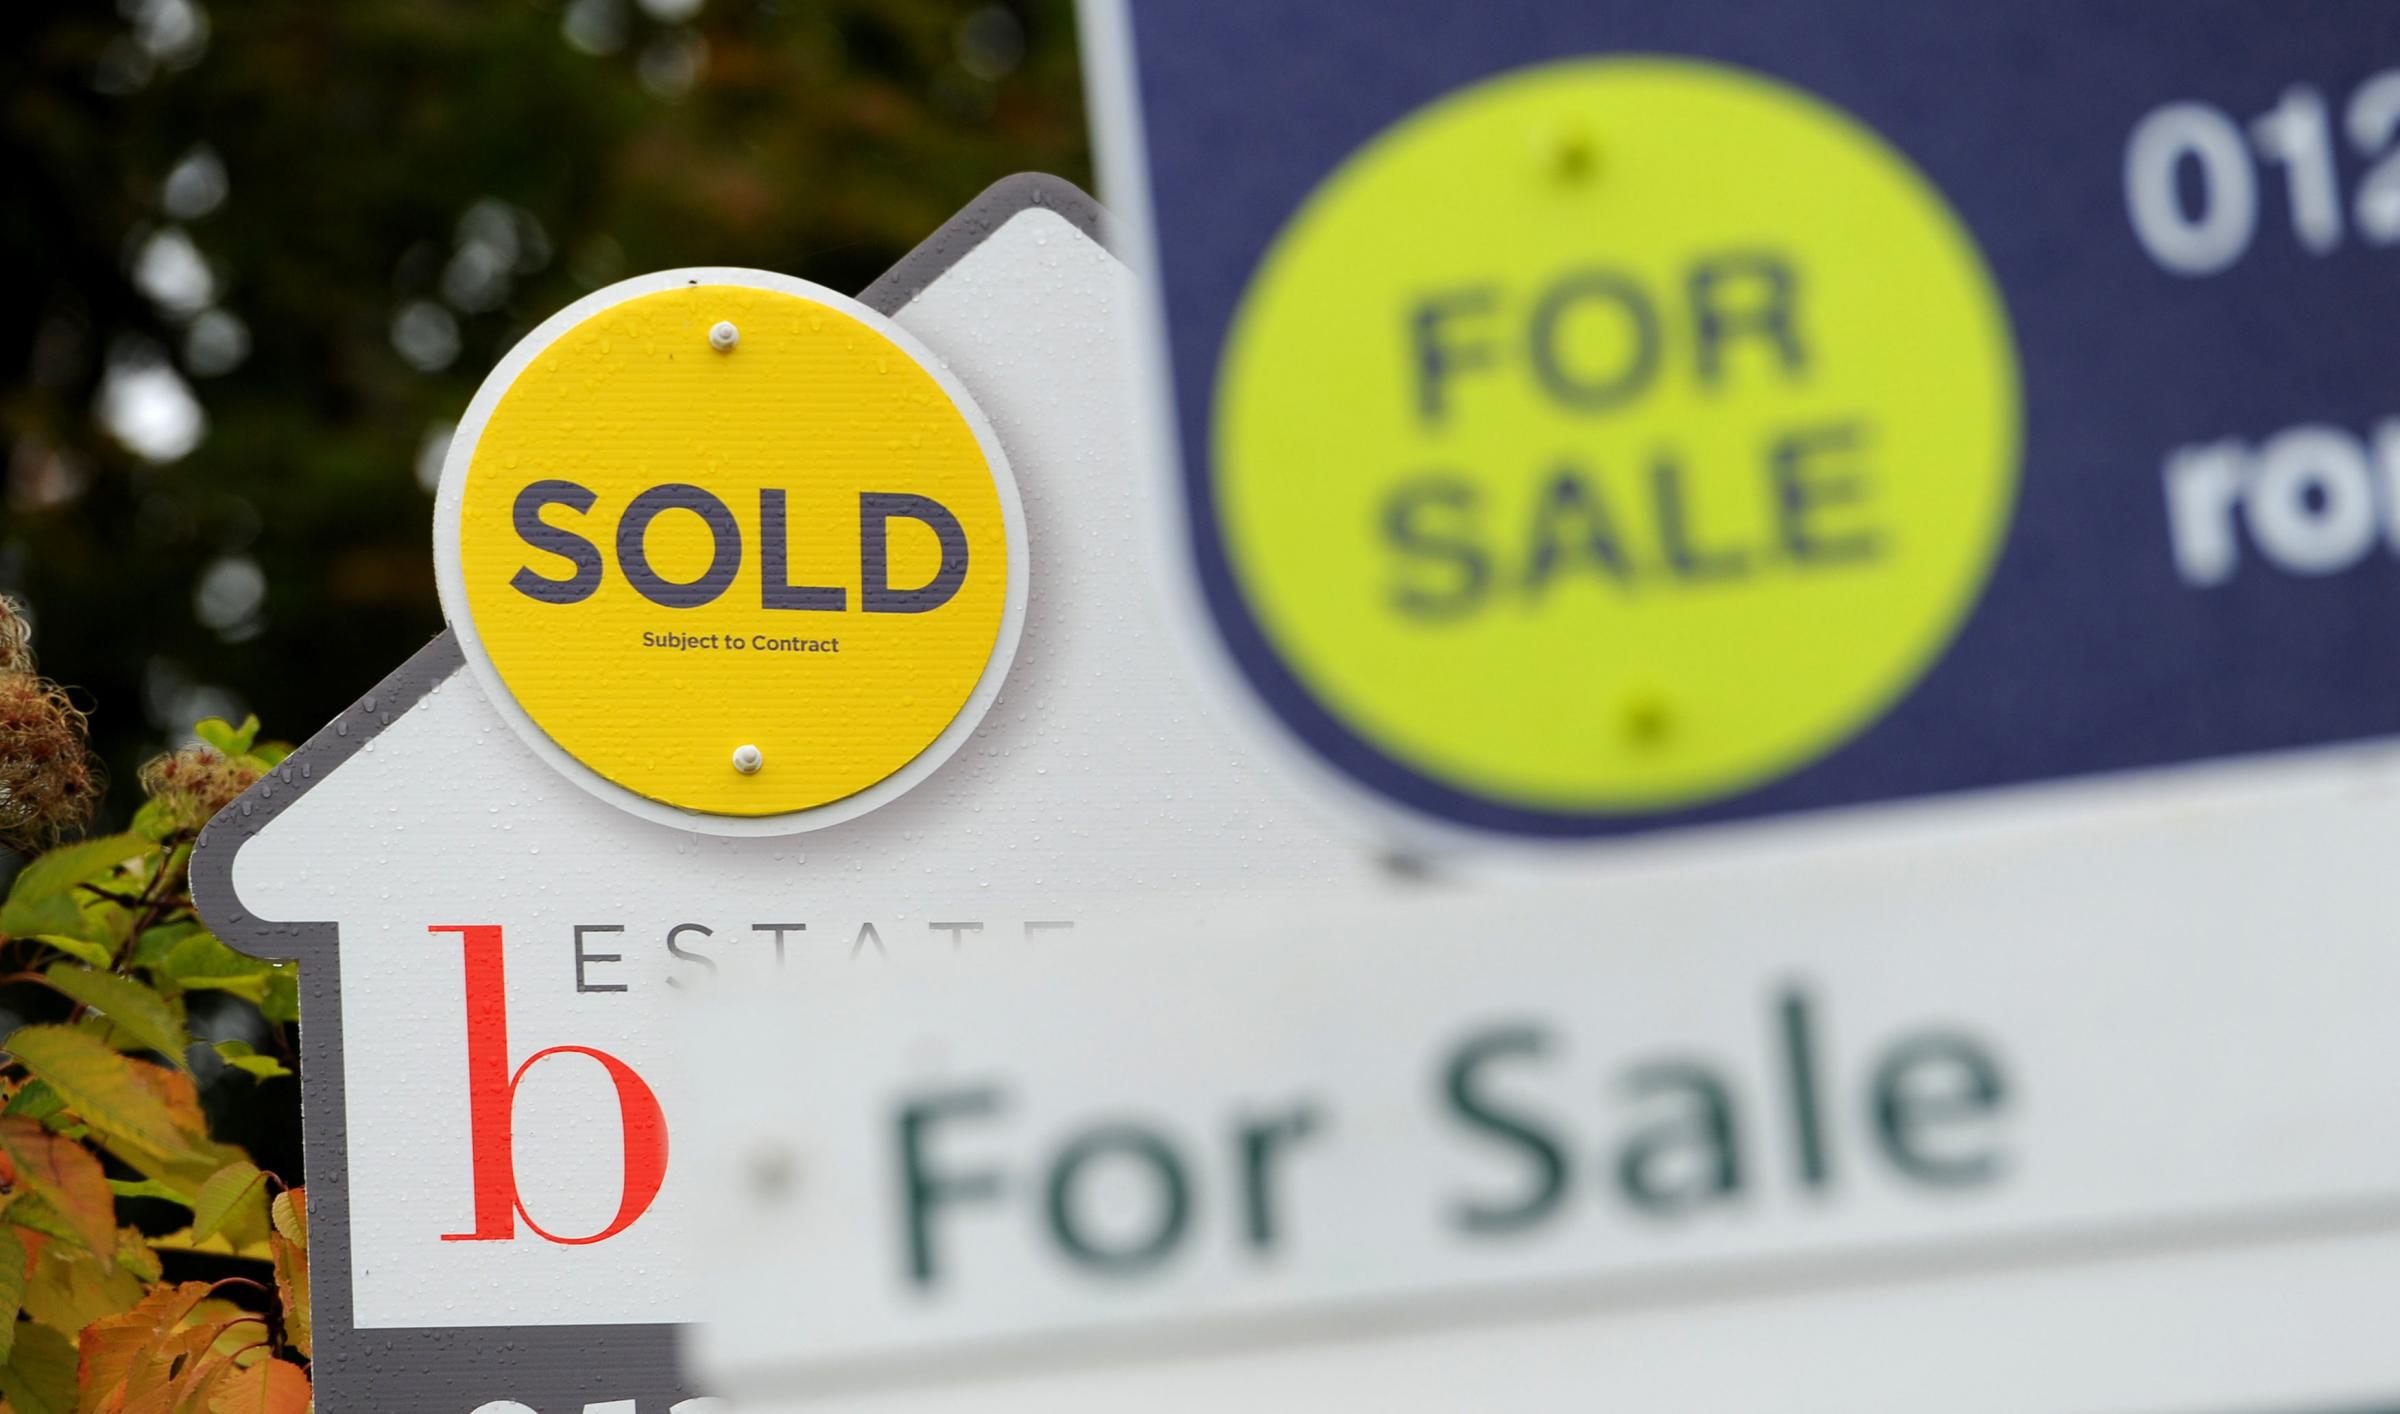 Scotland's housing shortage easing as number of second homes drops